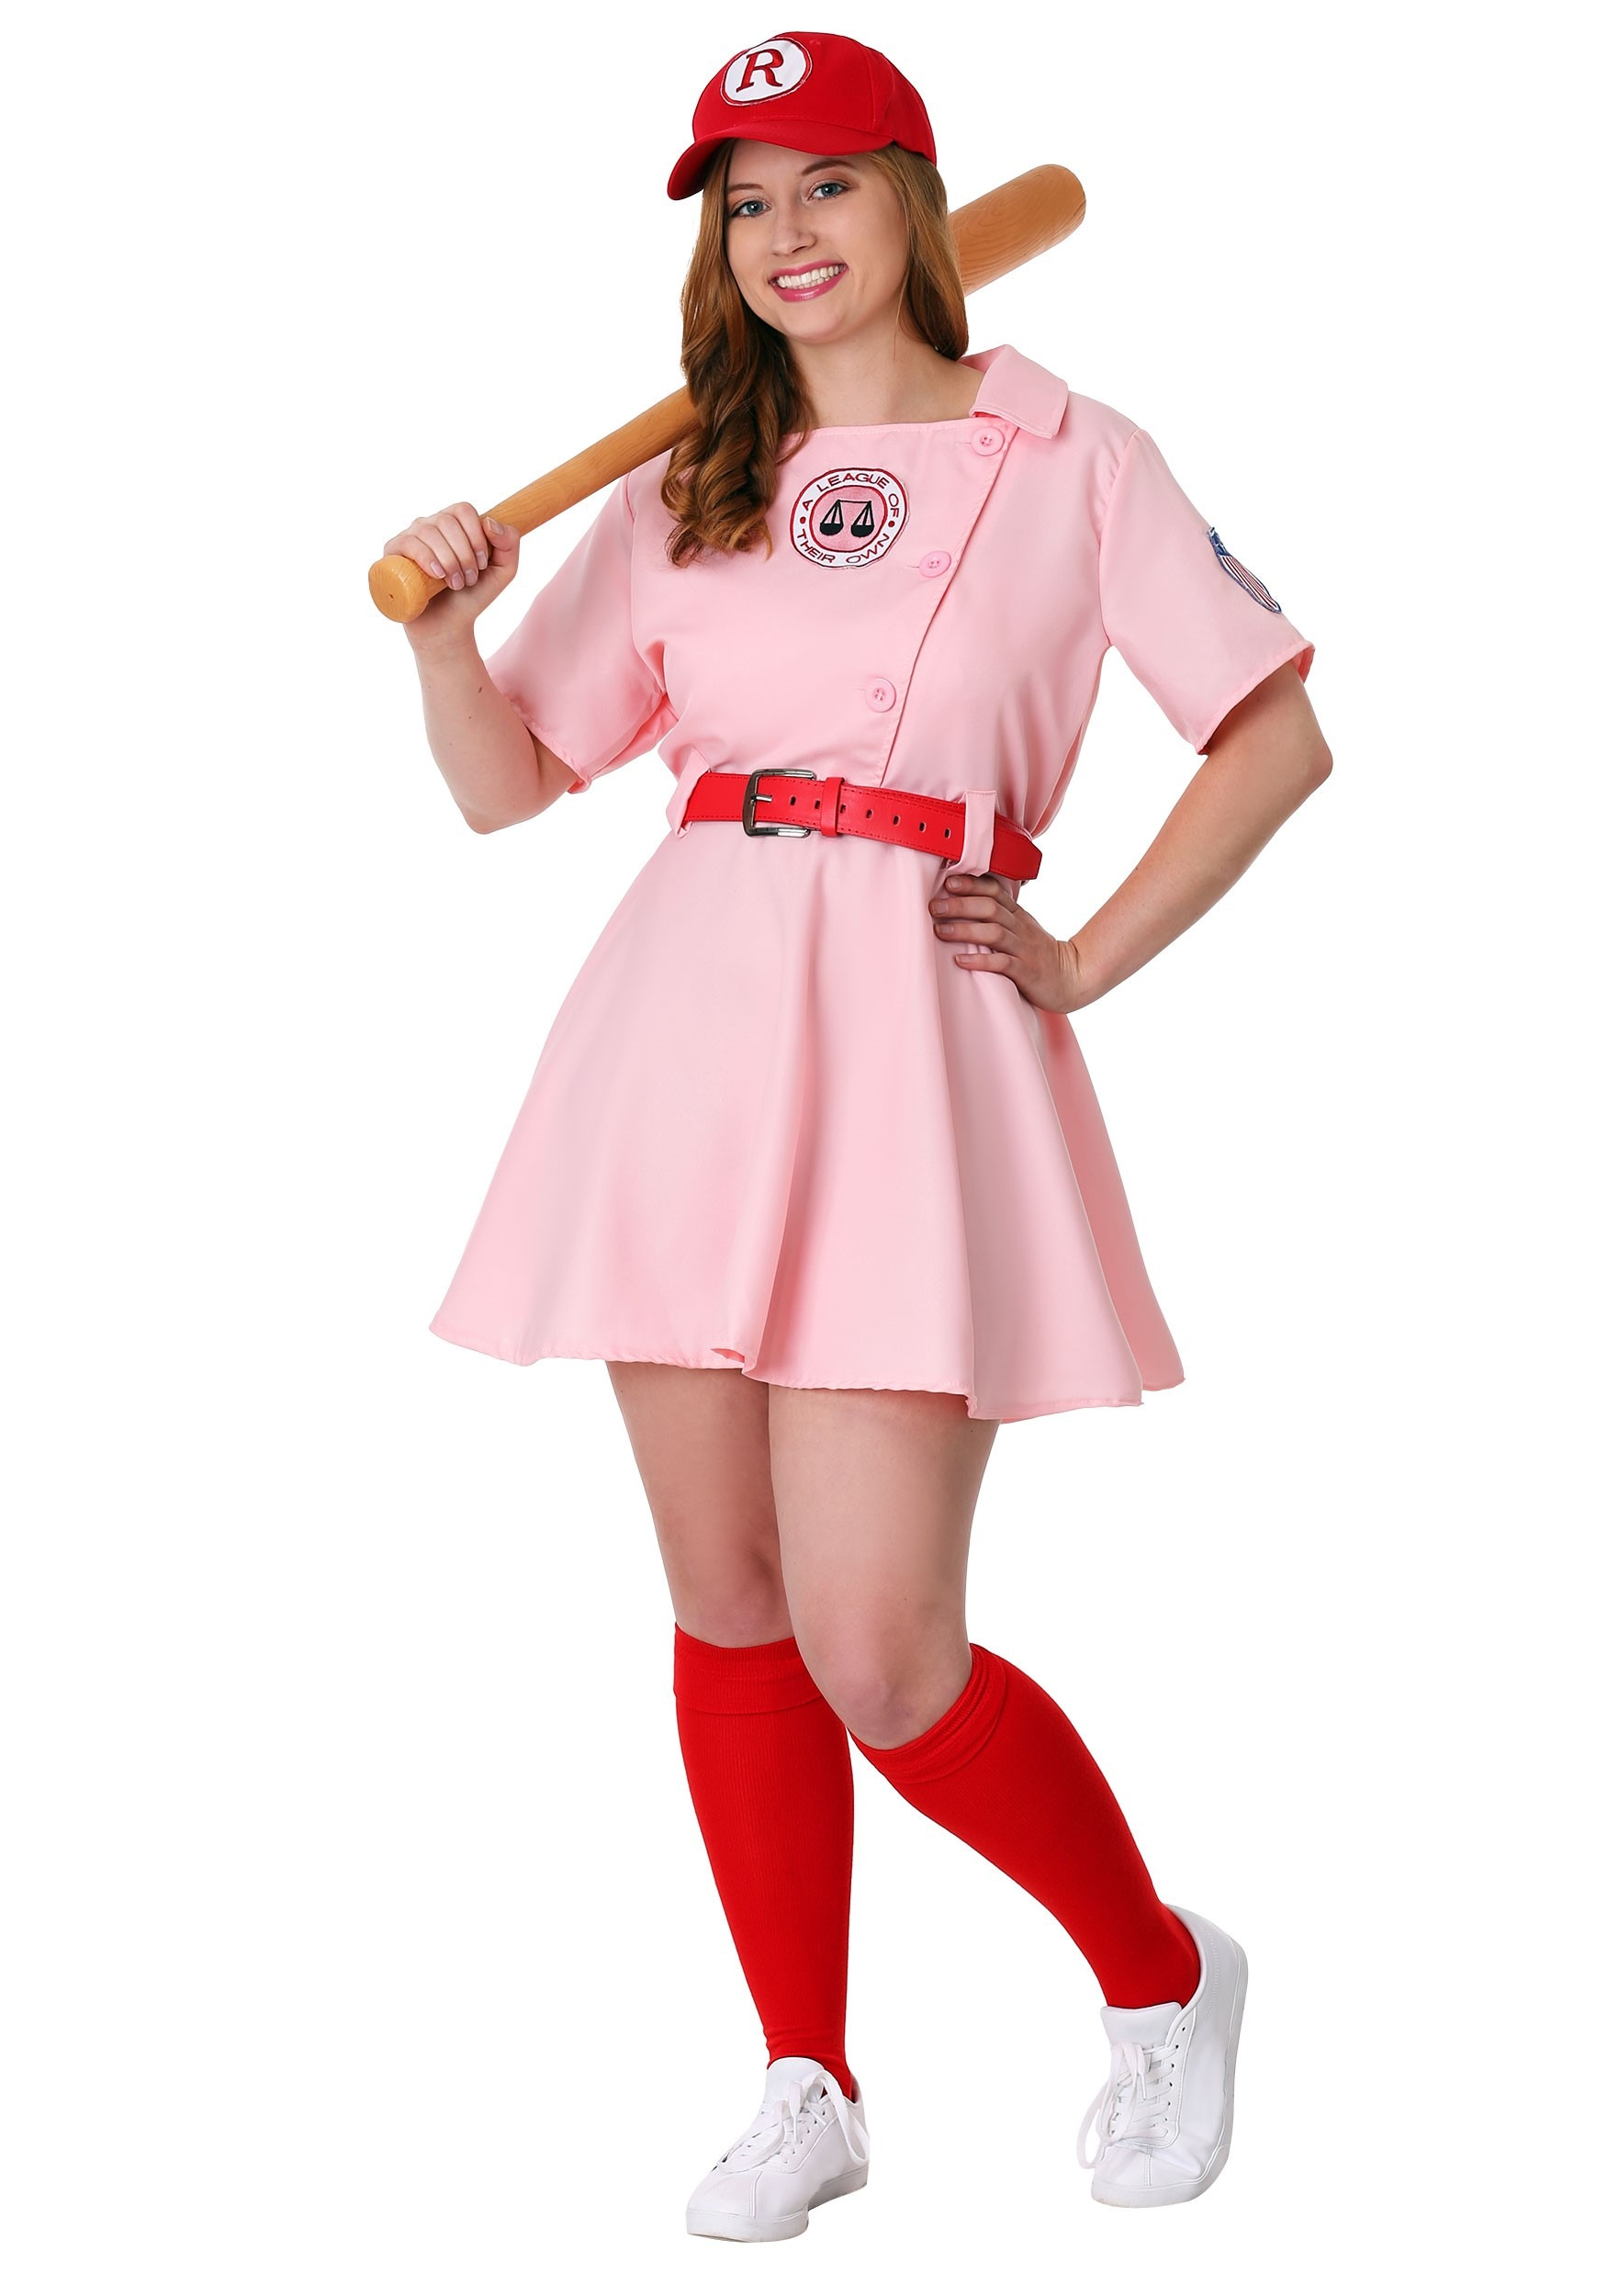 Plus Size League of Their Own Dottie Costume | 90s Movies Costume